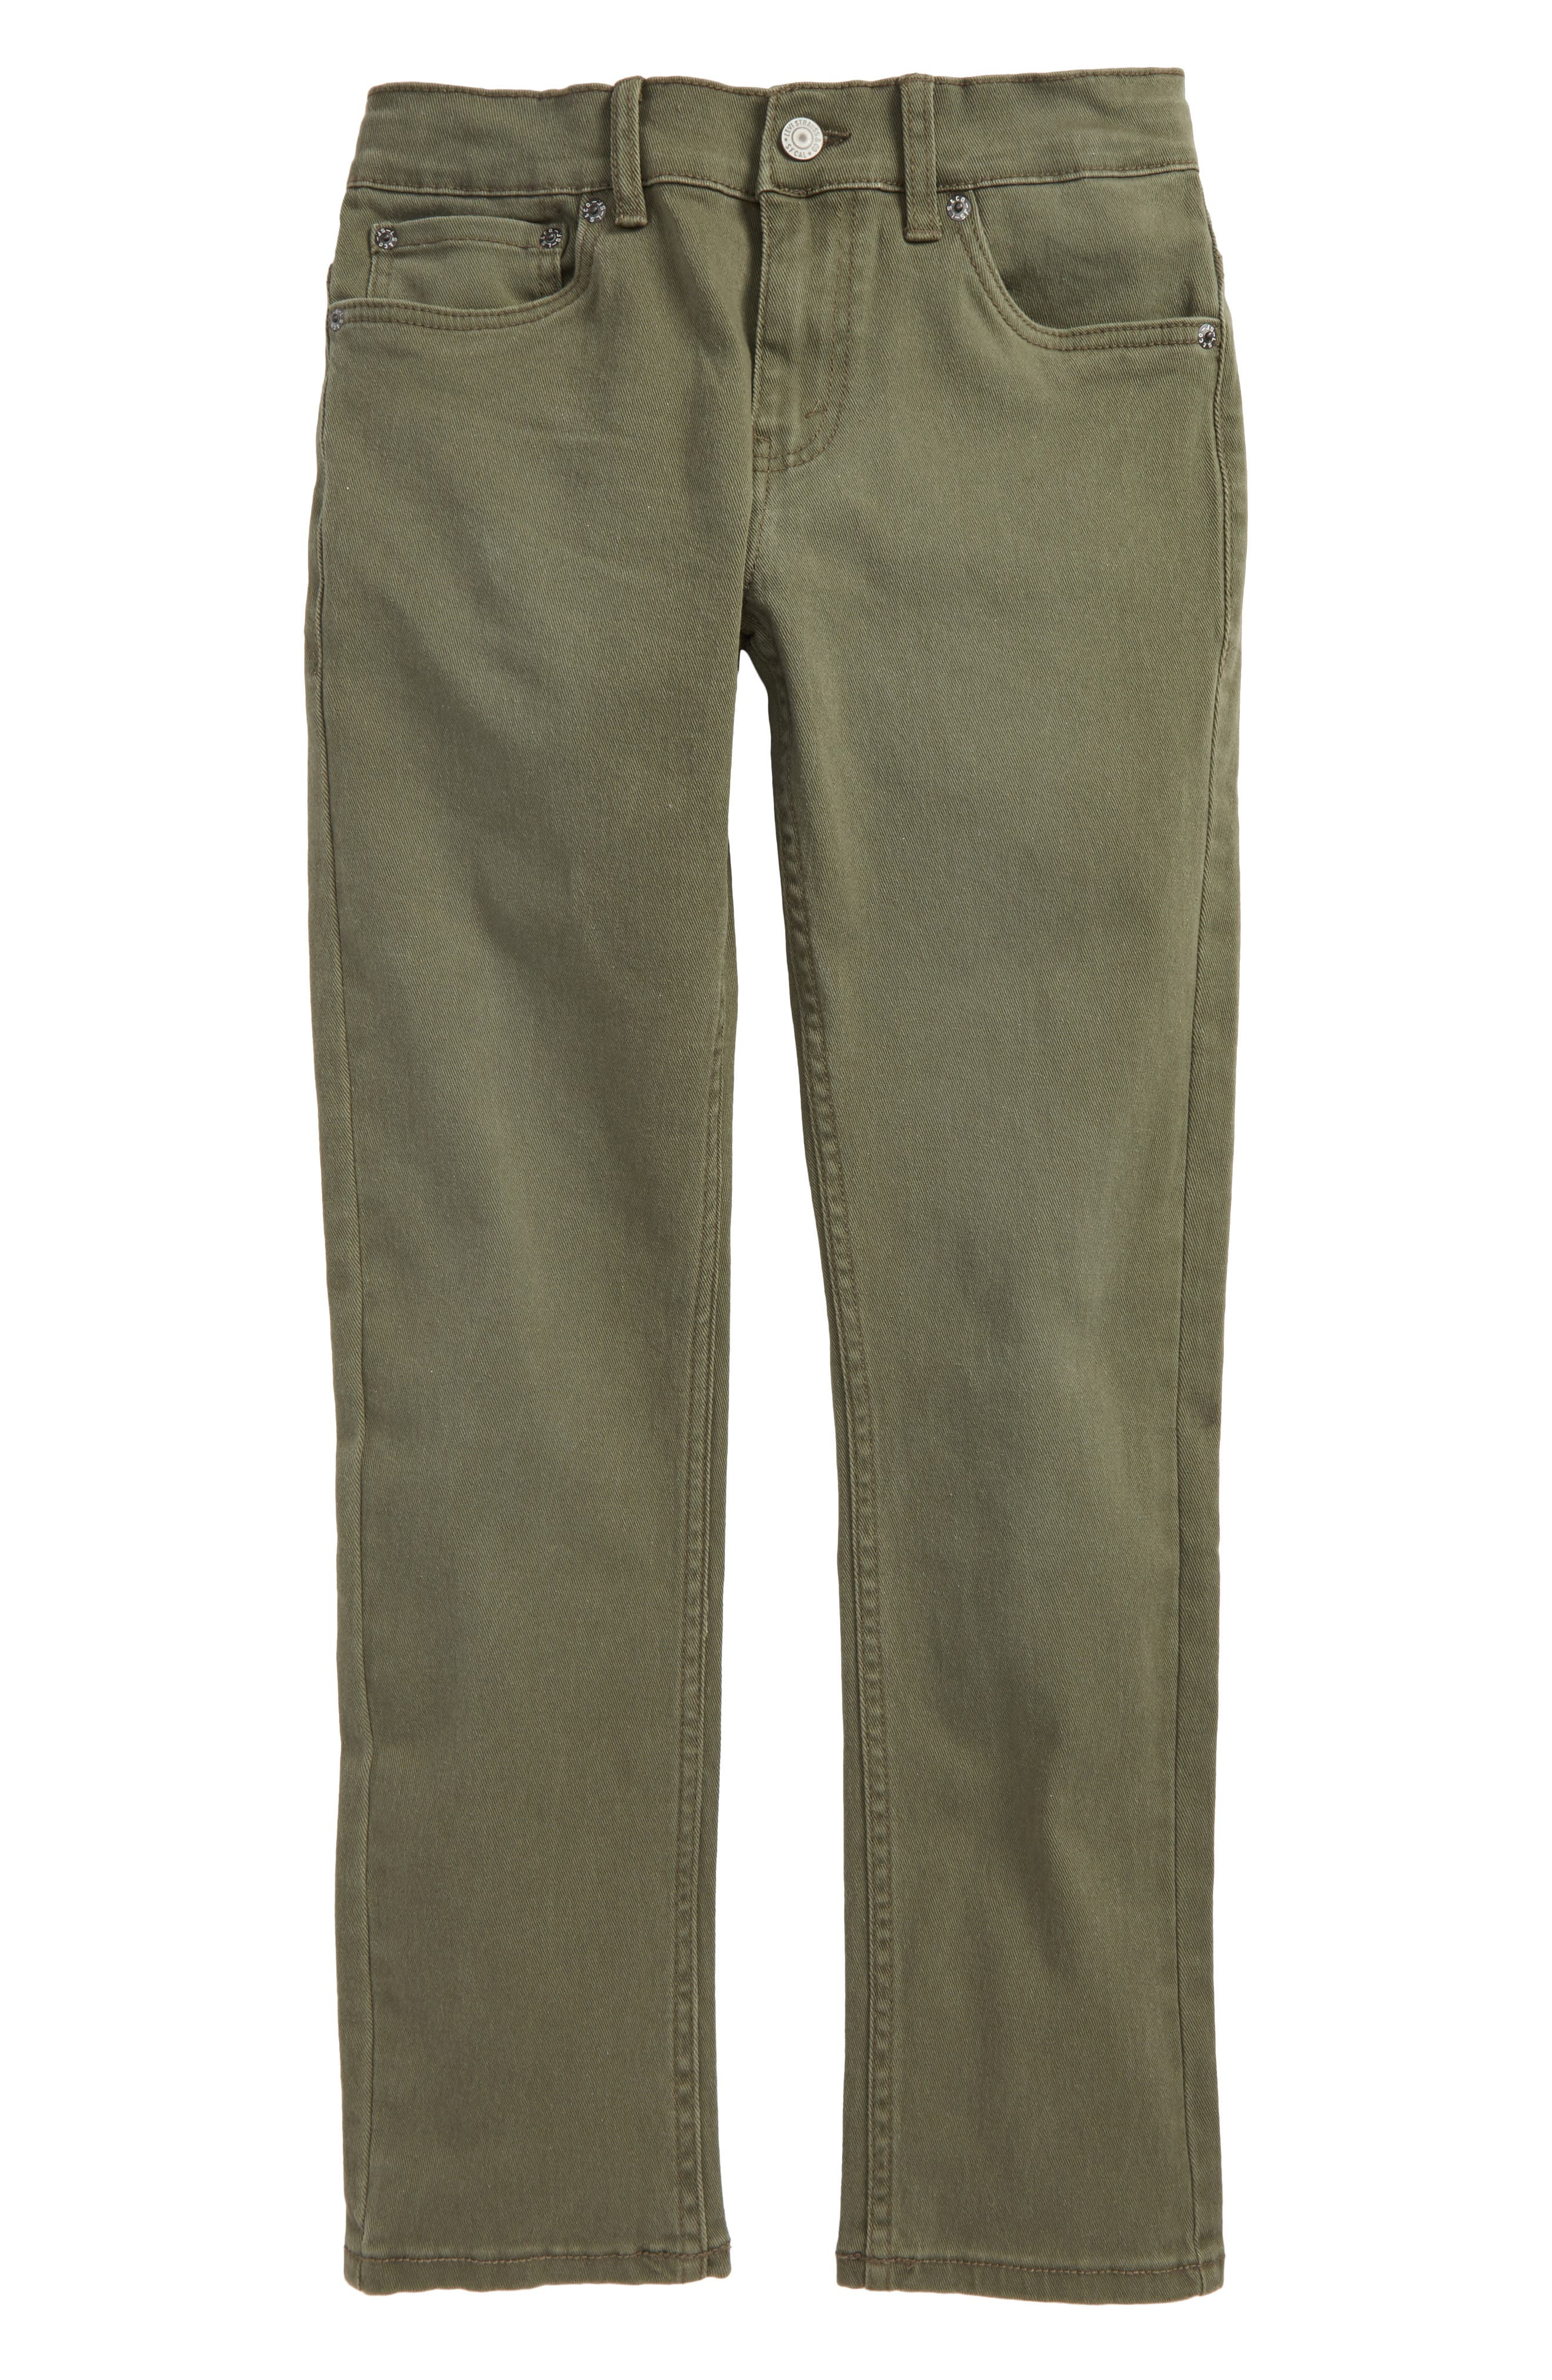 511 Slim Fit Jeans,                             Main thumbnail 1, color,                             Olive Night